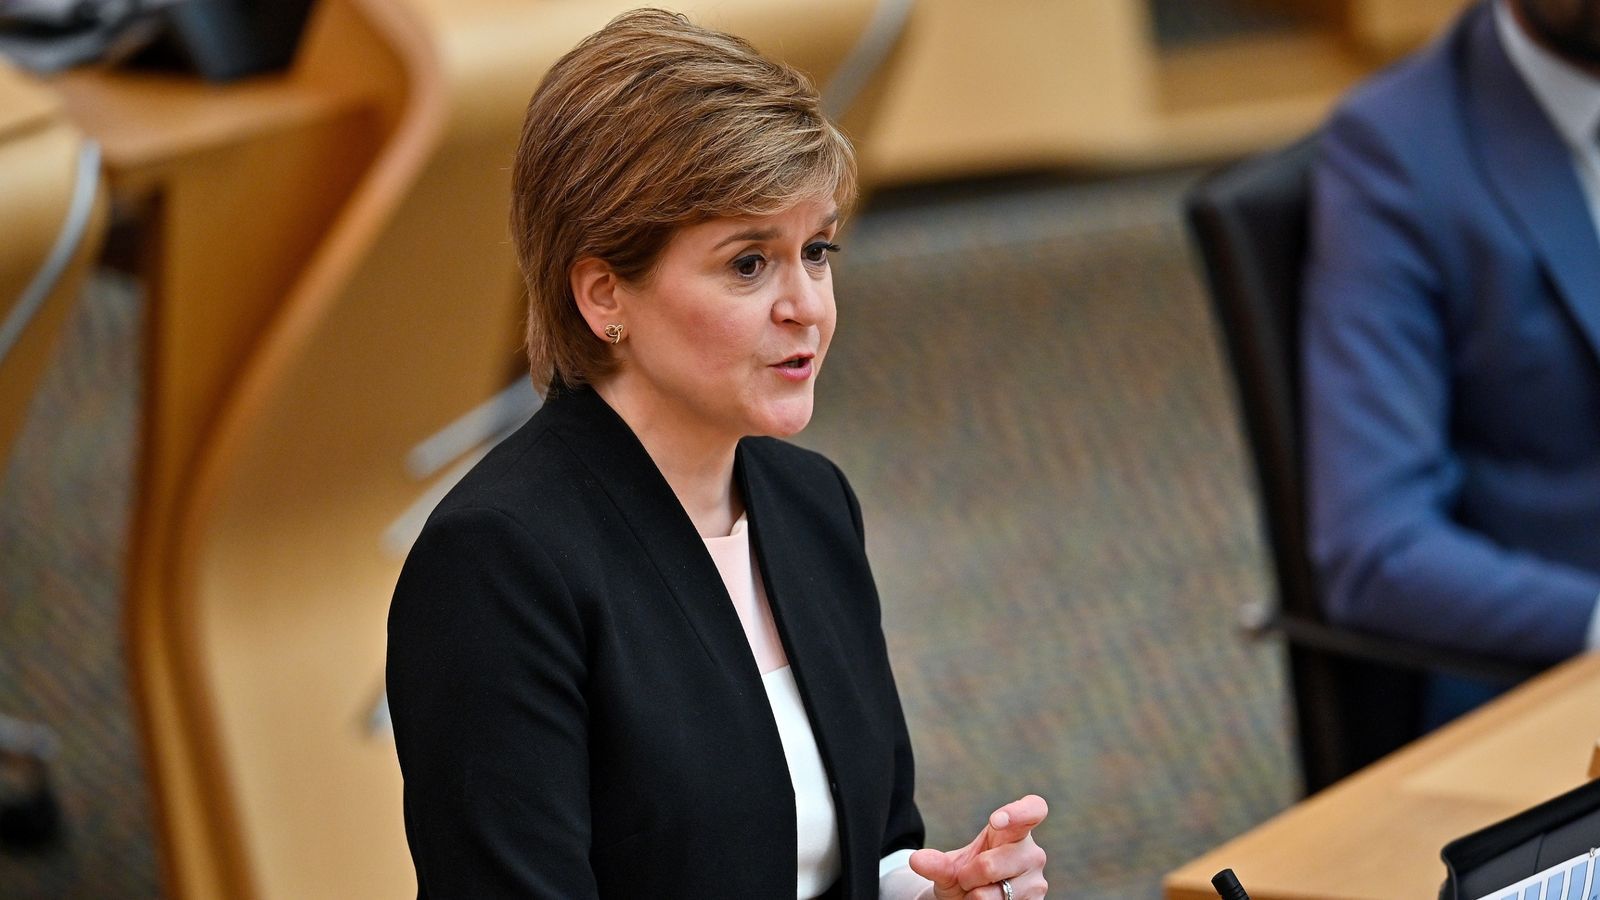 COVID-19: Scotland to confirm plans to ease coronavirus restrictions later